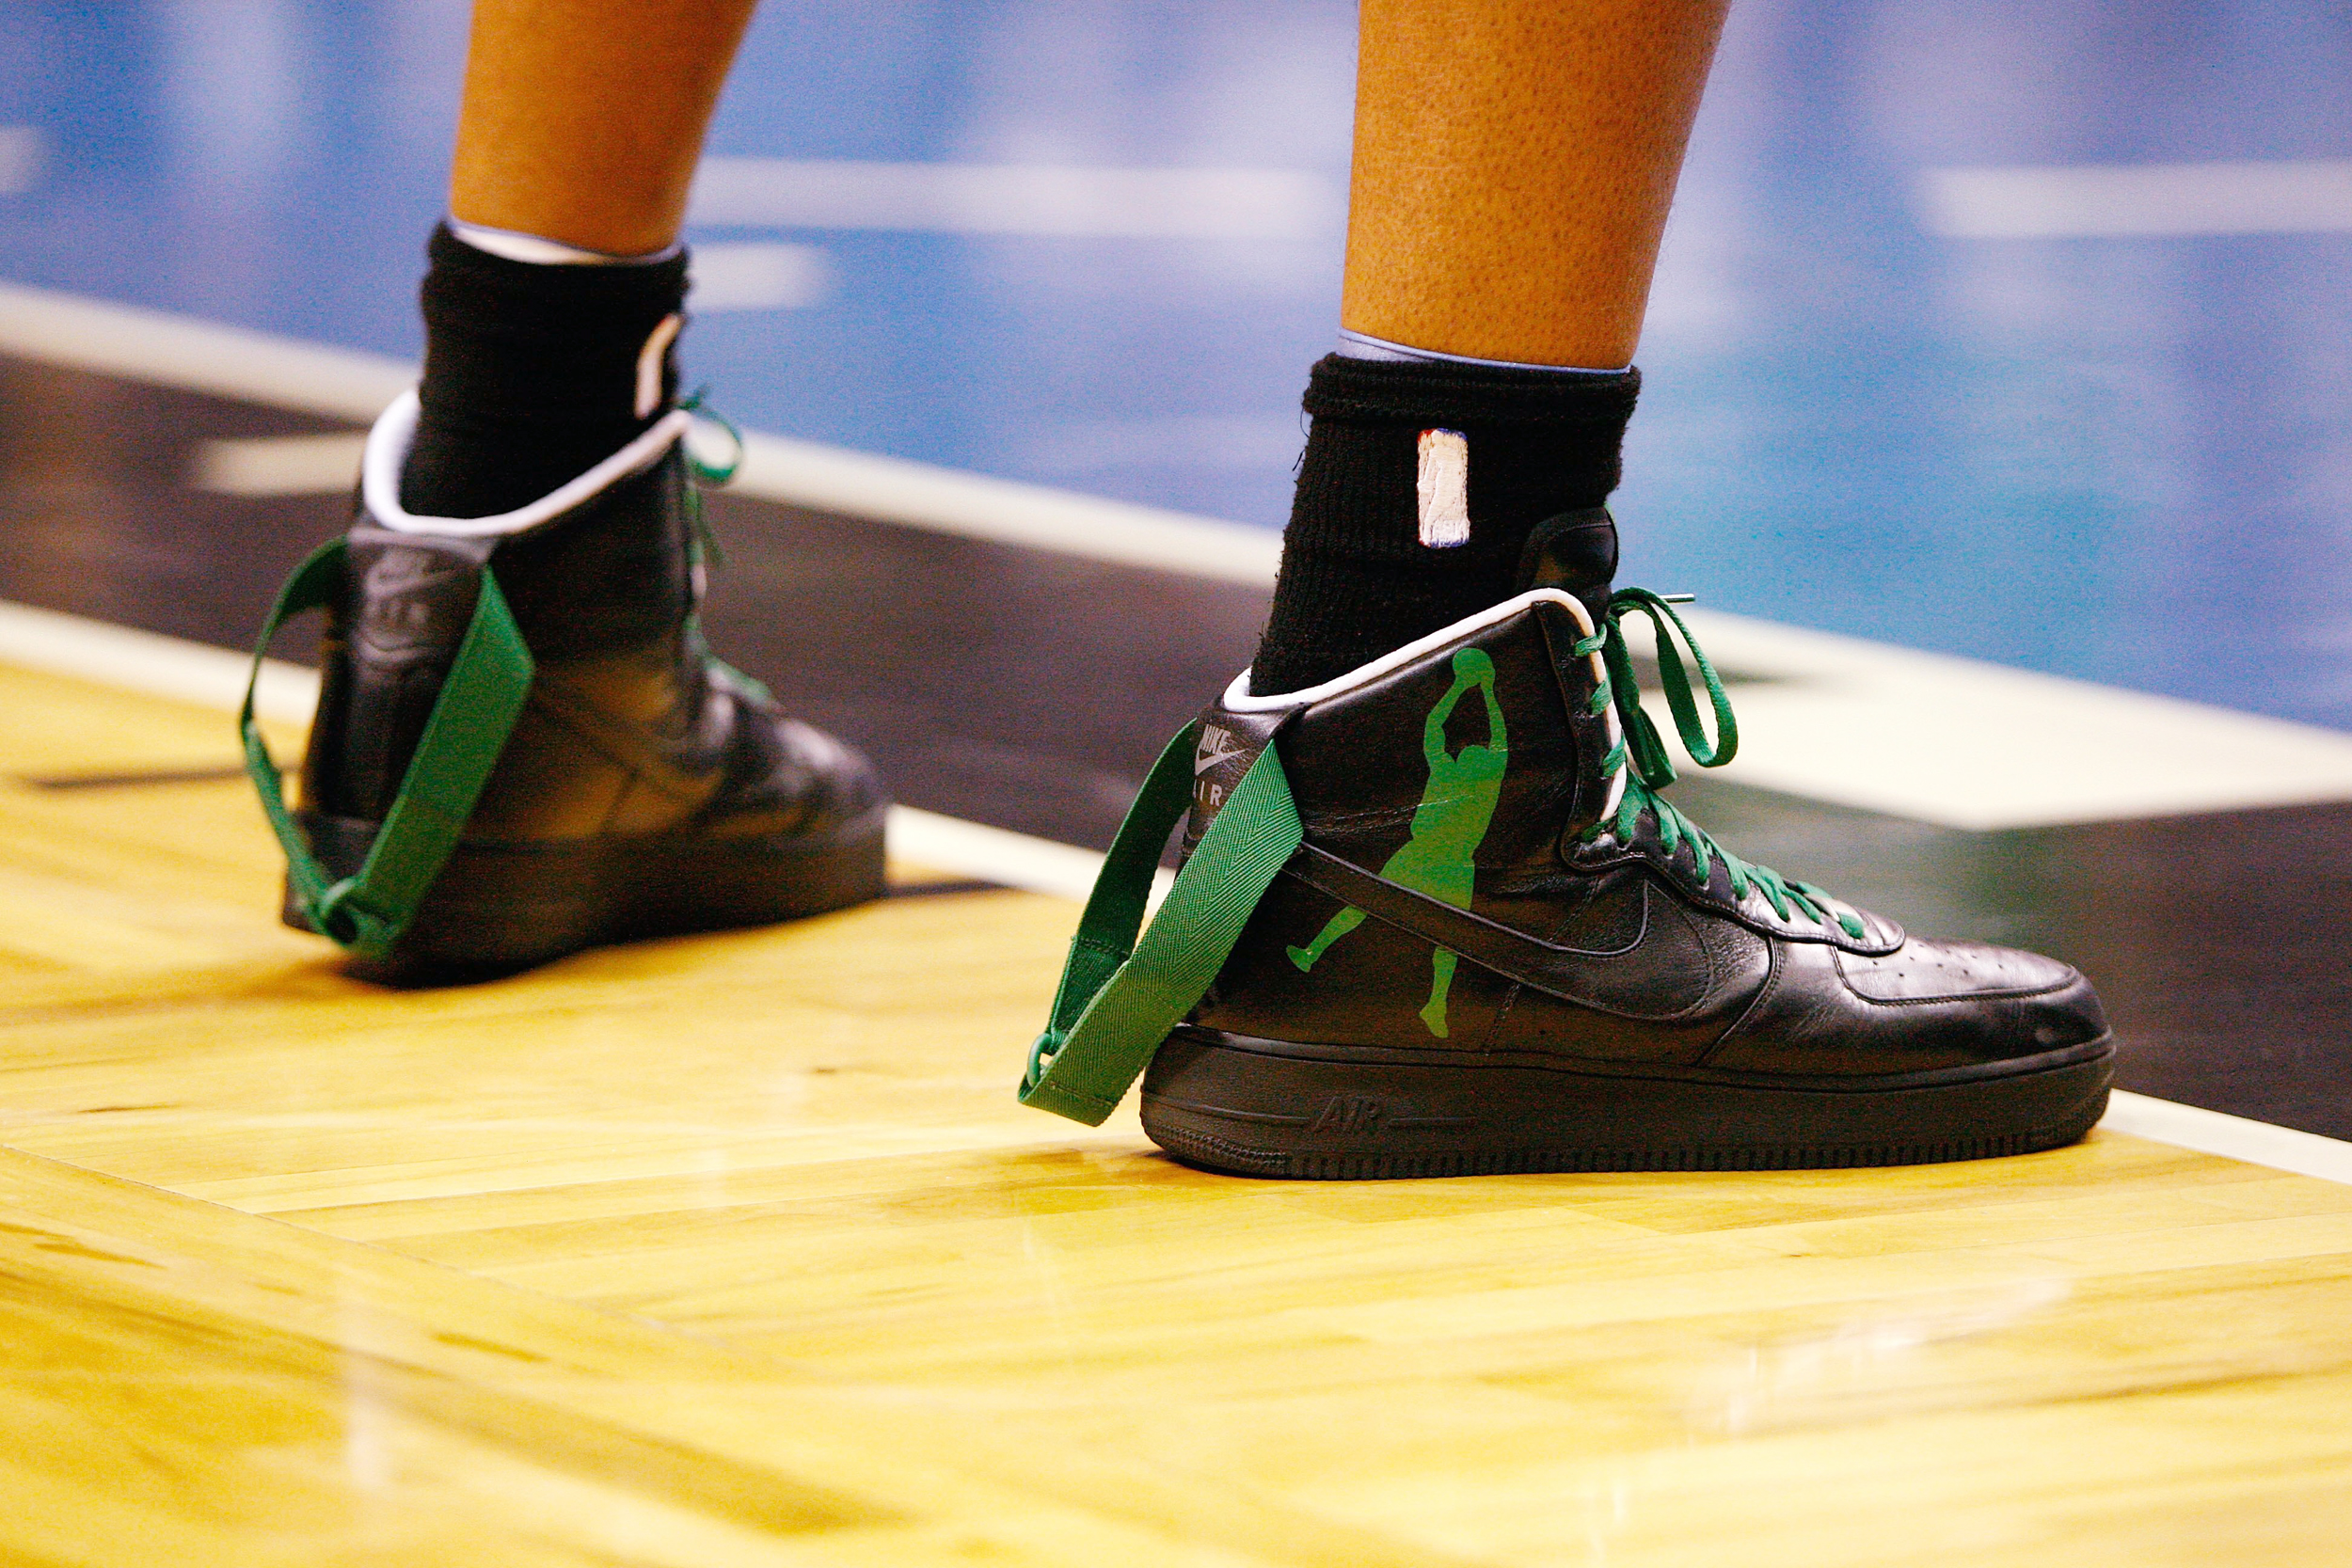 6317db27c10d A detail of sneakers worn by Rasheed Wallace of the Boston Celtics against  the Orlando Magic in Game 5 of the Eastern Conference Finals during the  2010 NBA ...